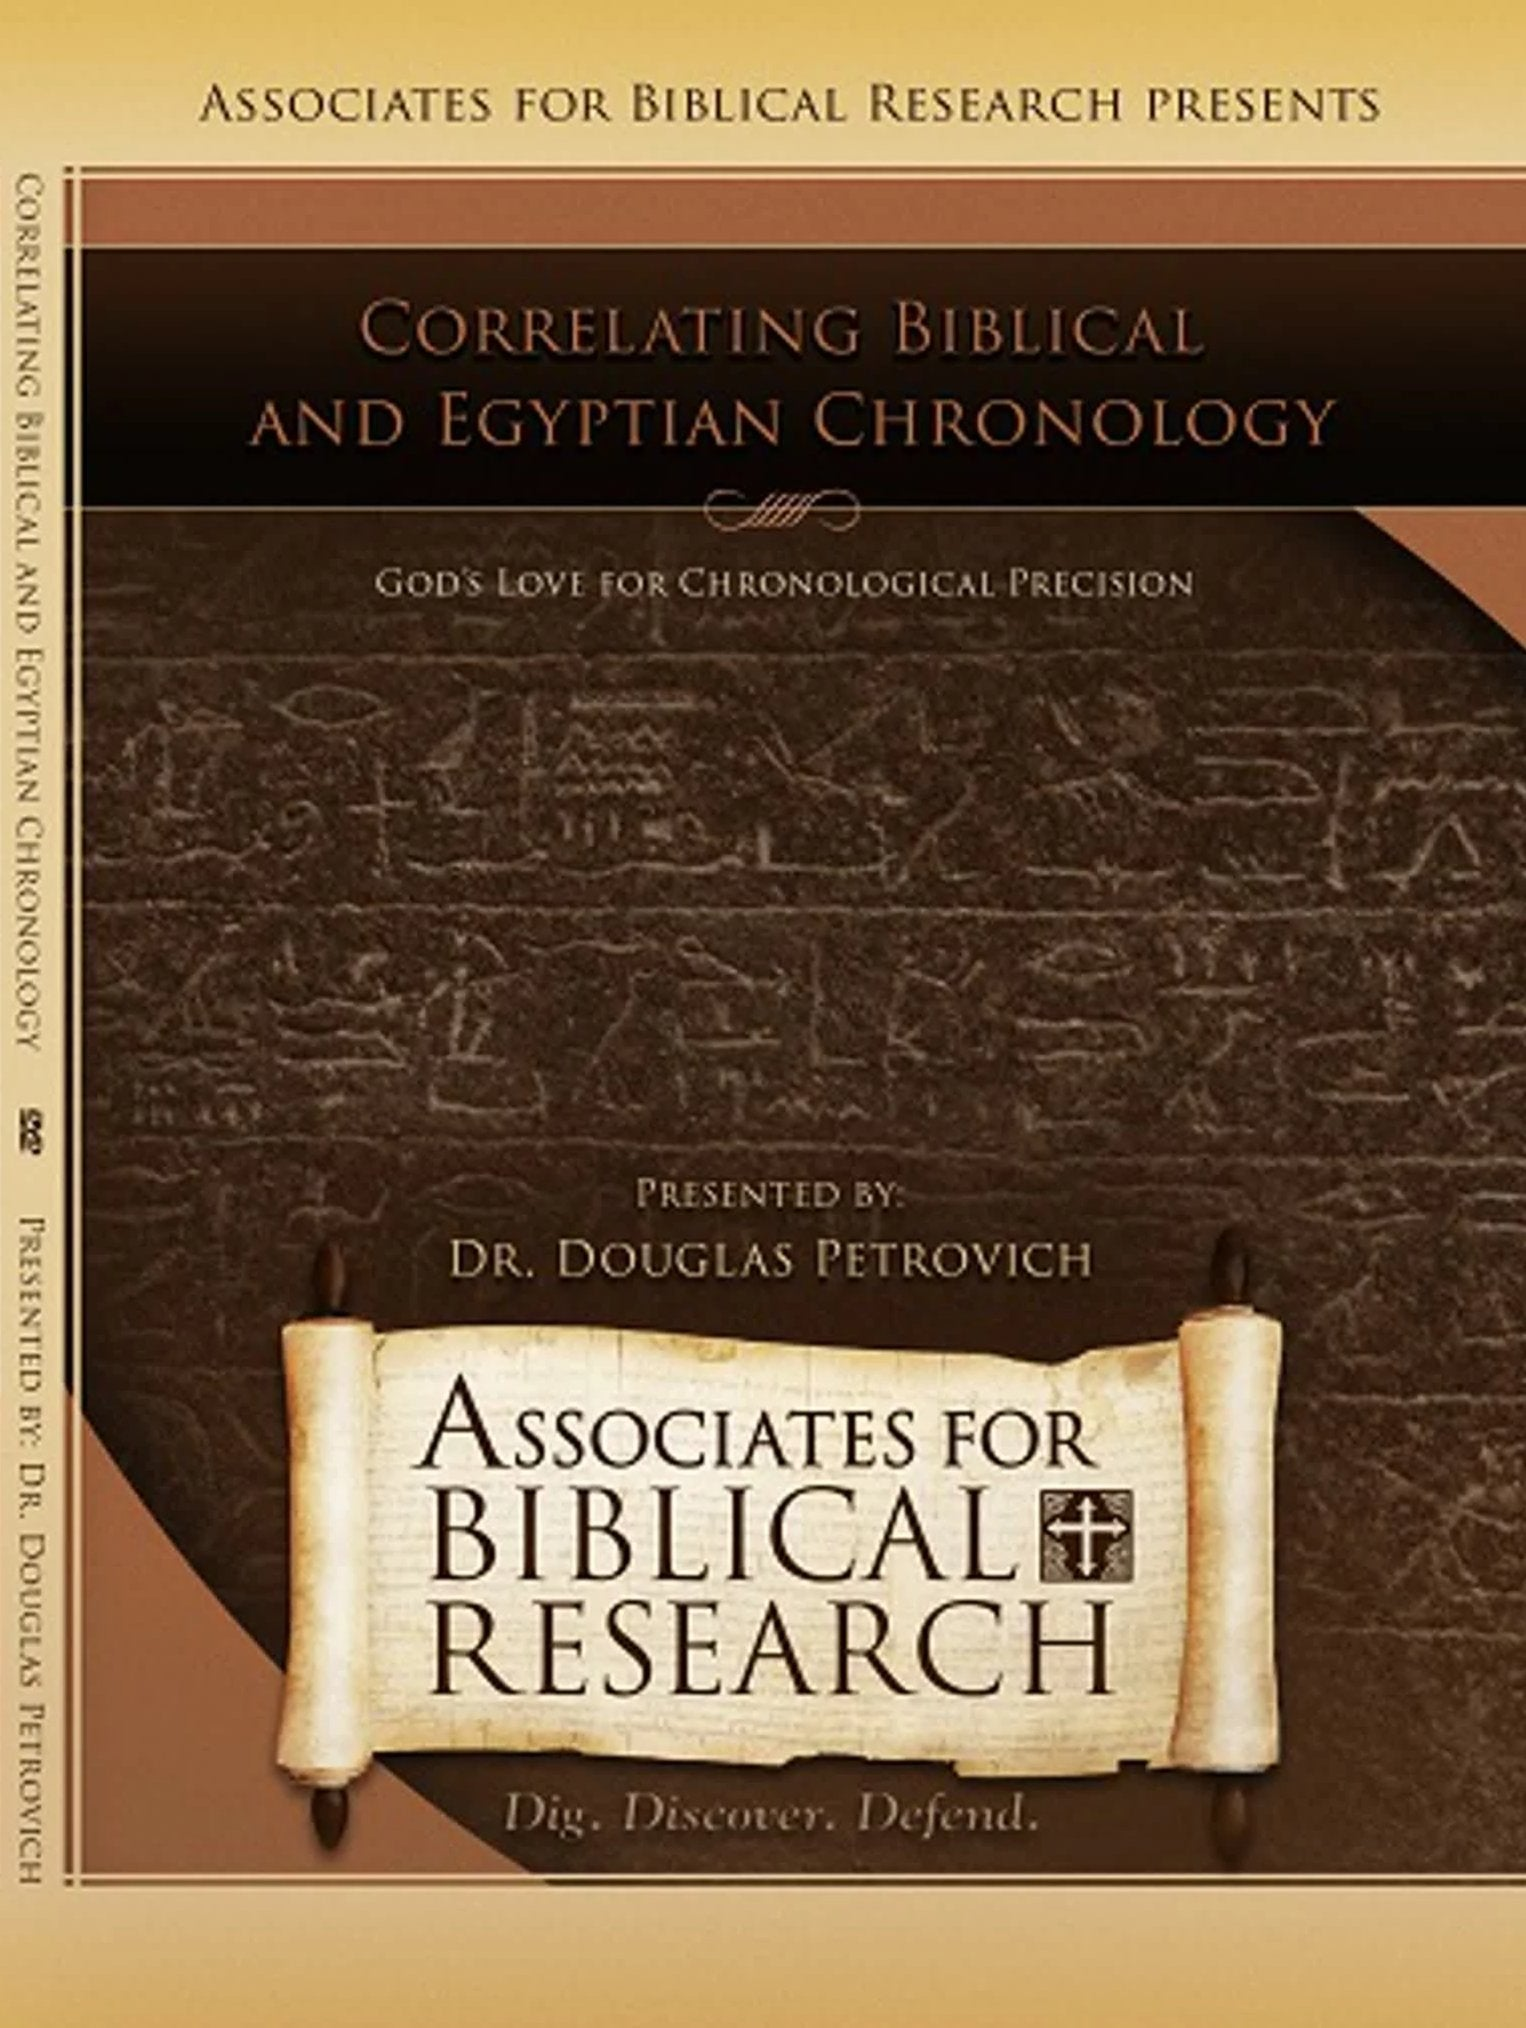 Correlating Biblical and Egyptian Chronology DVD